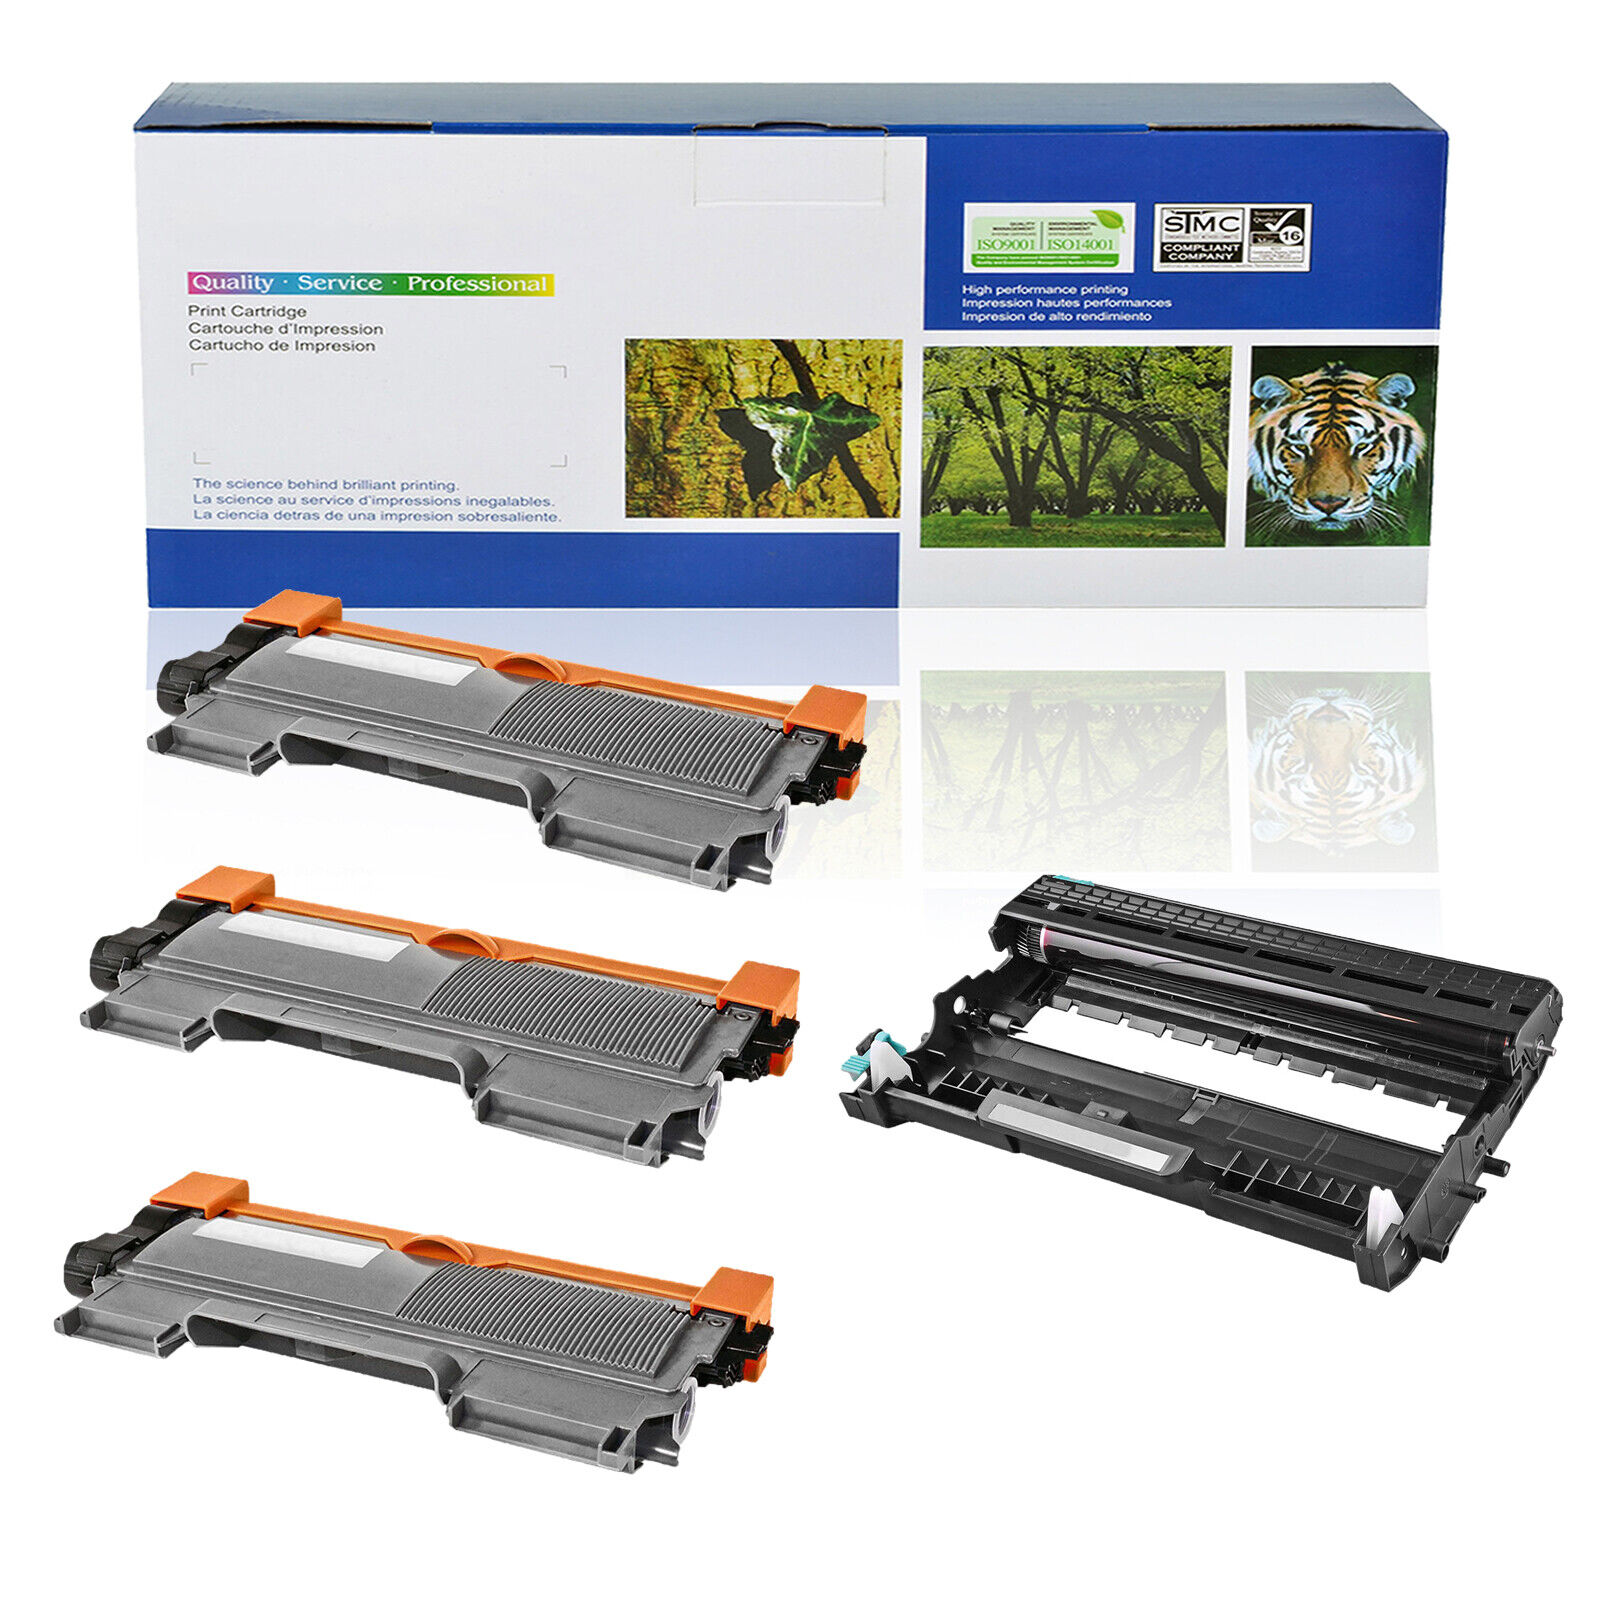 3x TN450+2x DR420 Toner Drum For Brother DCP-7060DR 7065DR 7070DWR HL-2270 2280